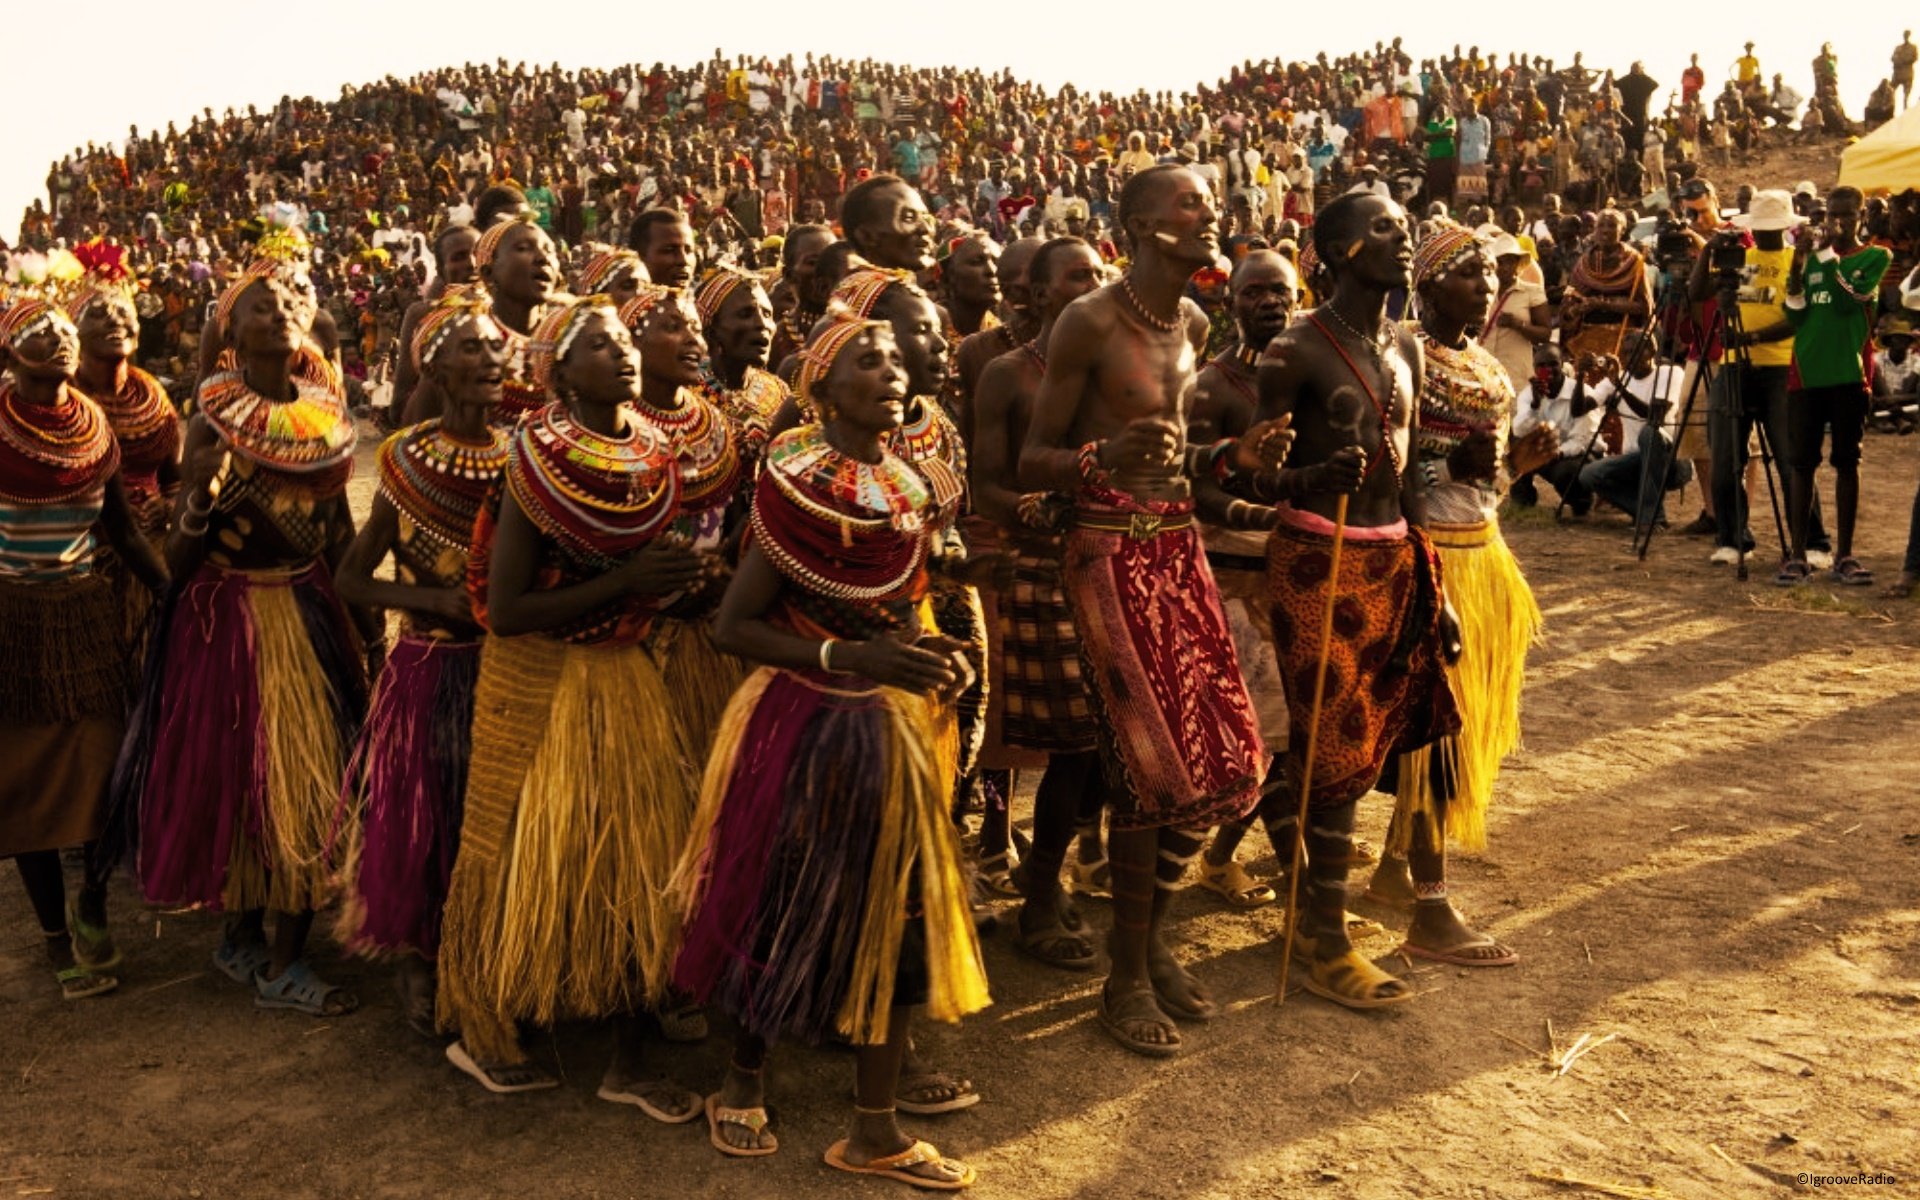 Lake Turkana Cultural Festival photo by Enchanted landscapes